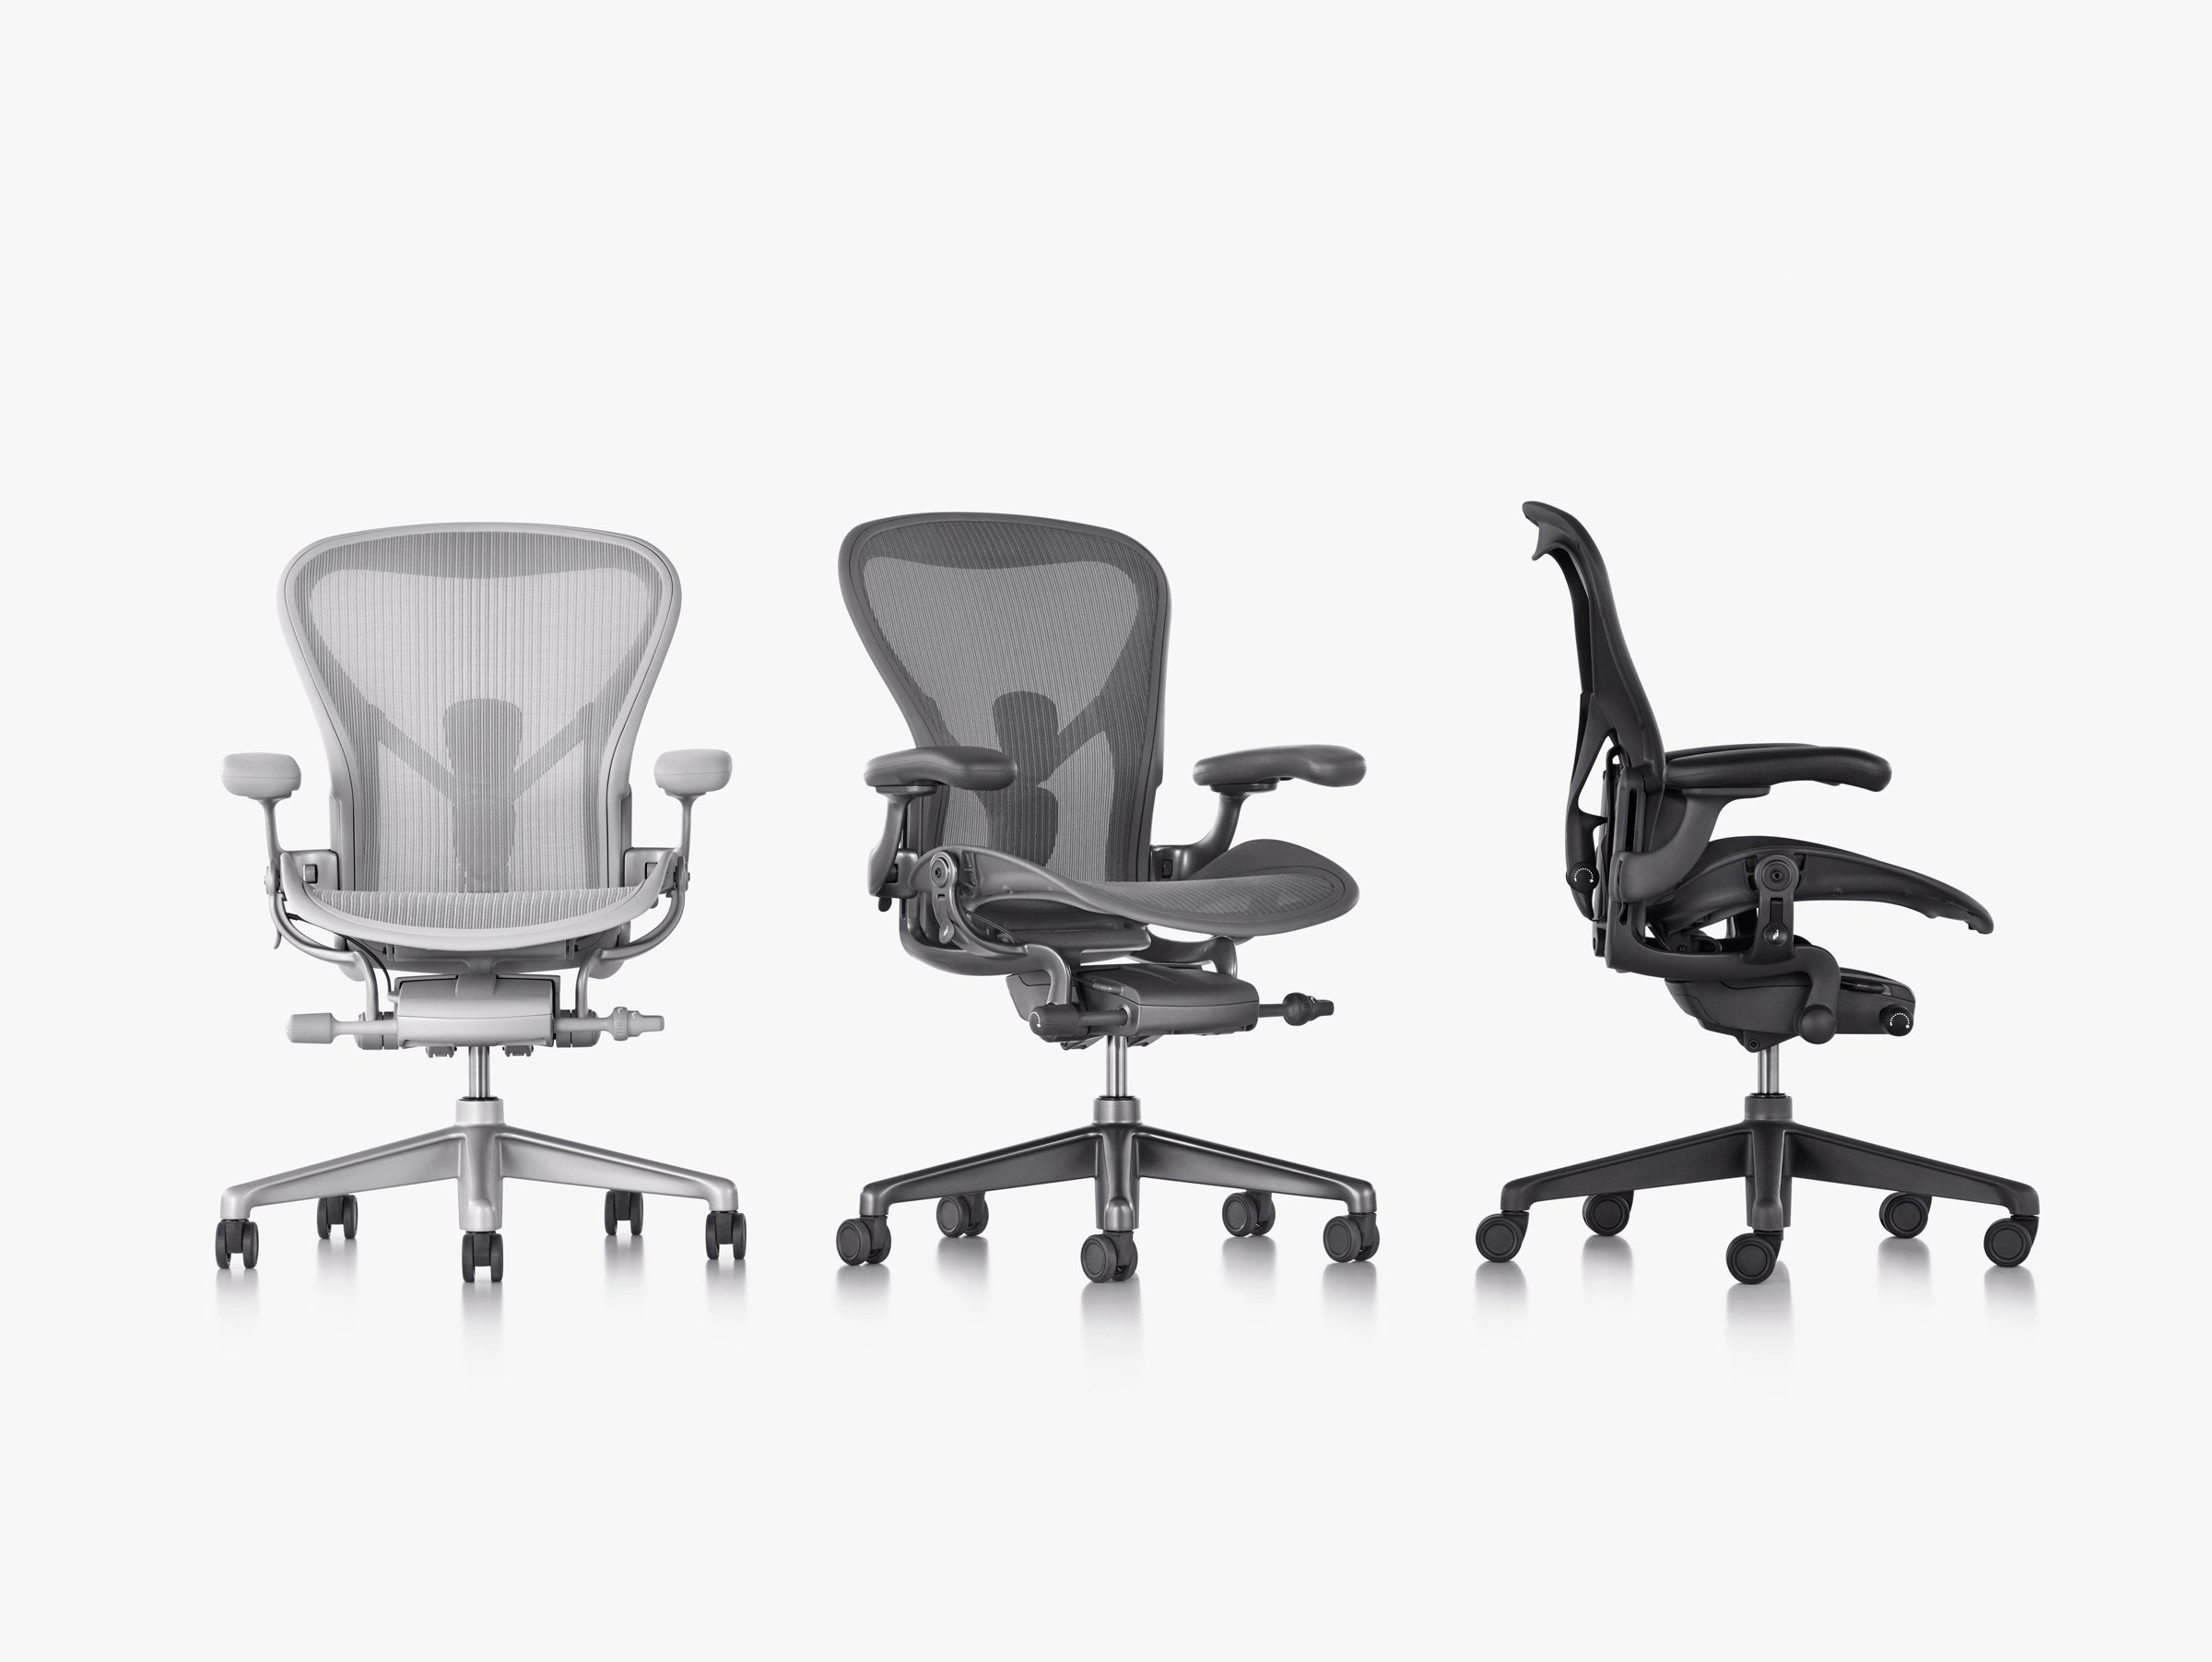 aeron chair manual circular sofa herman miller just redesigned its iconic wired